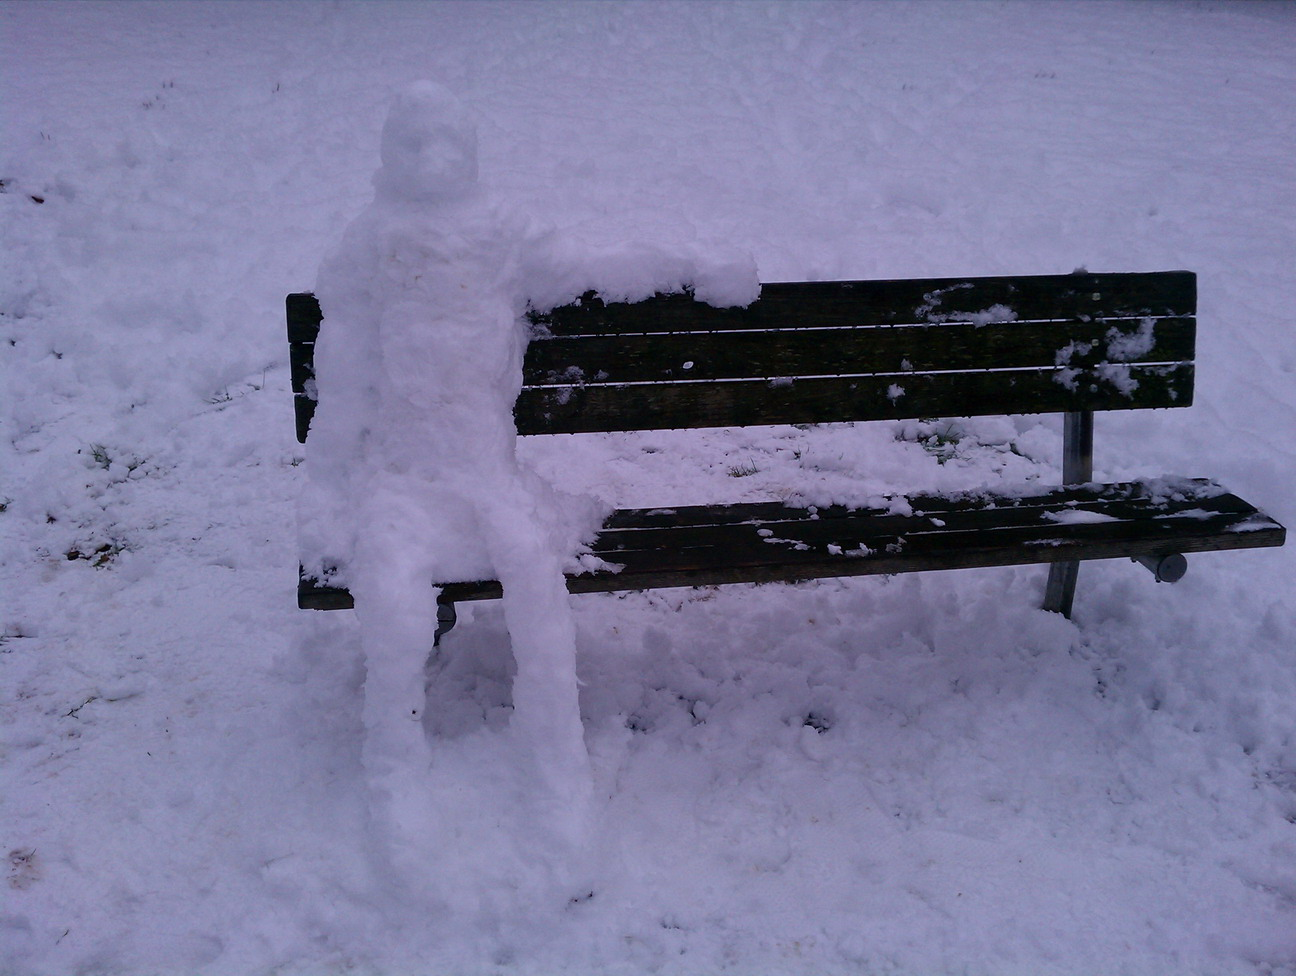 Seattle snow, 2012-01-15, snowman on a bench.